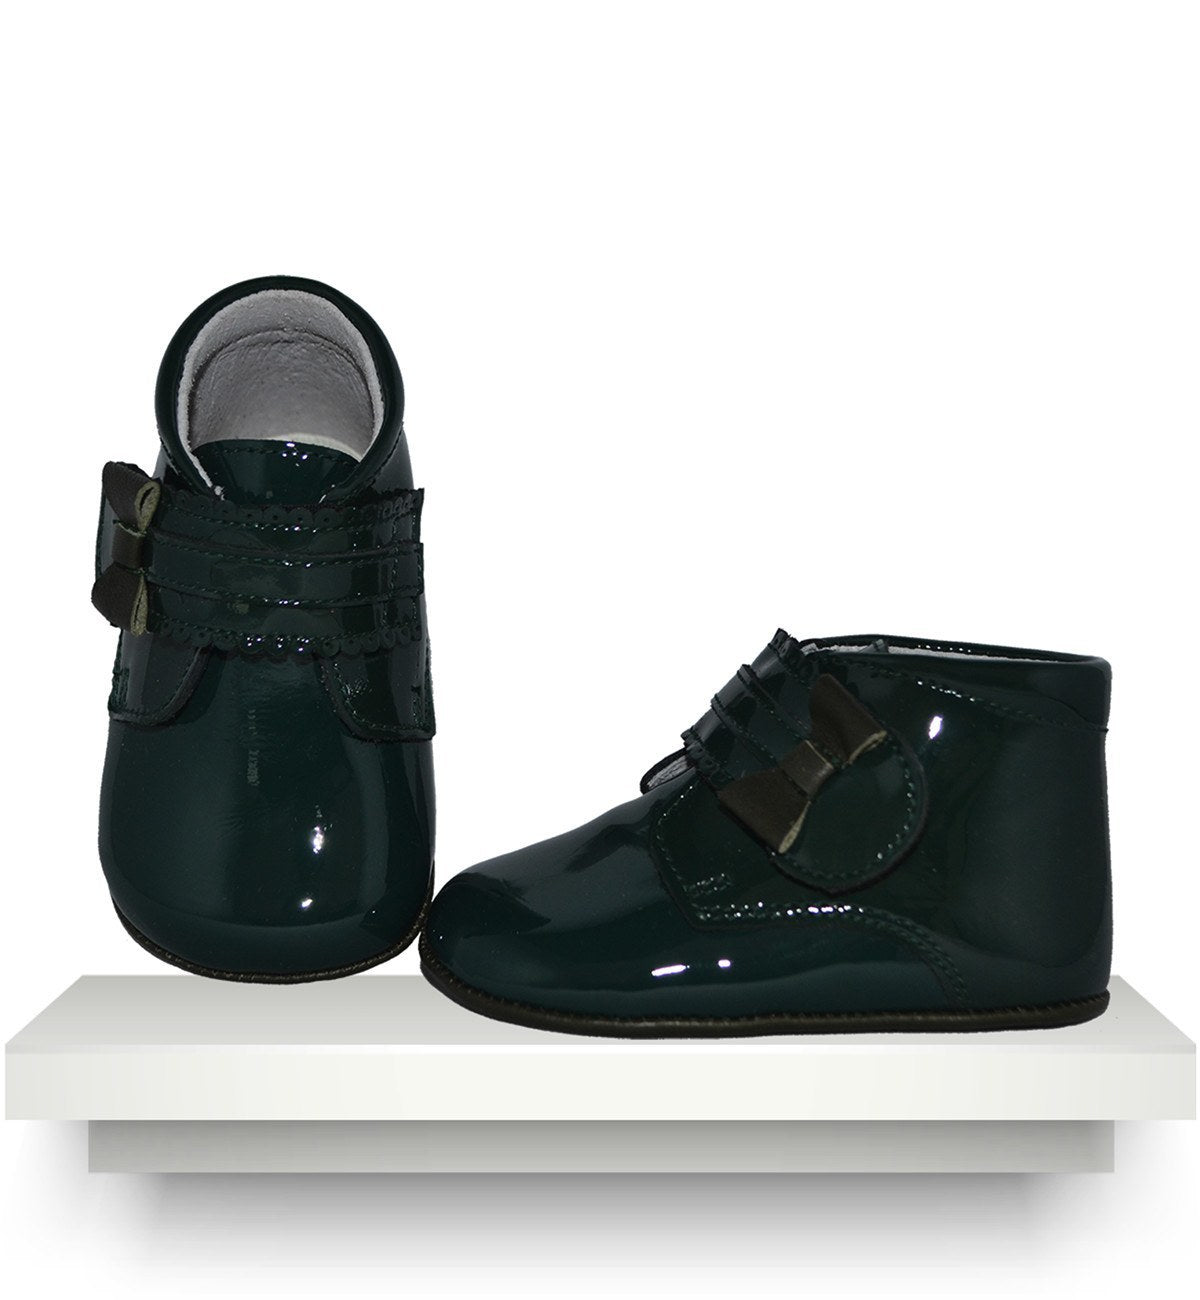 Spanish baby clothes | baby Shoes | Dark green patent leather boots |babymaC  - 1